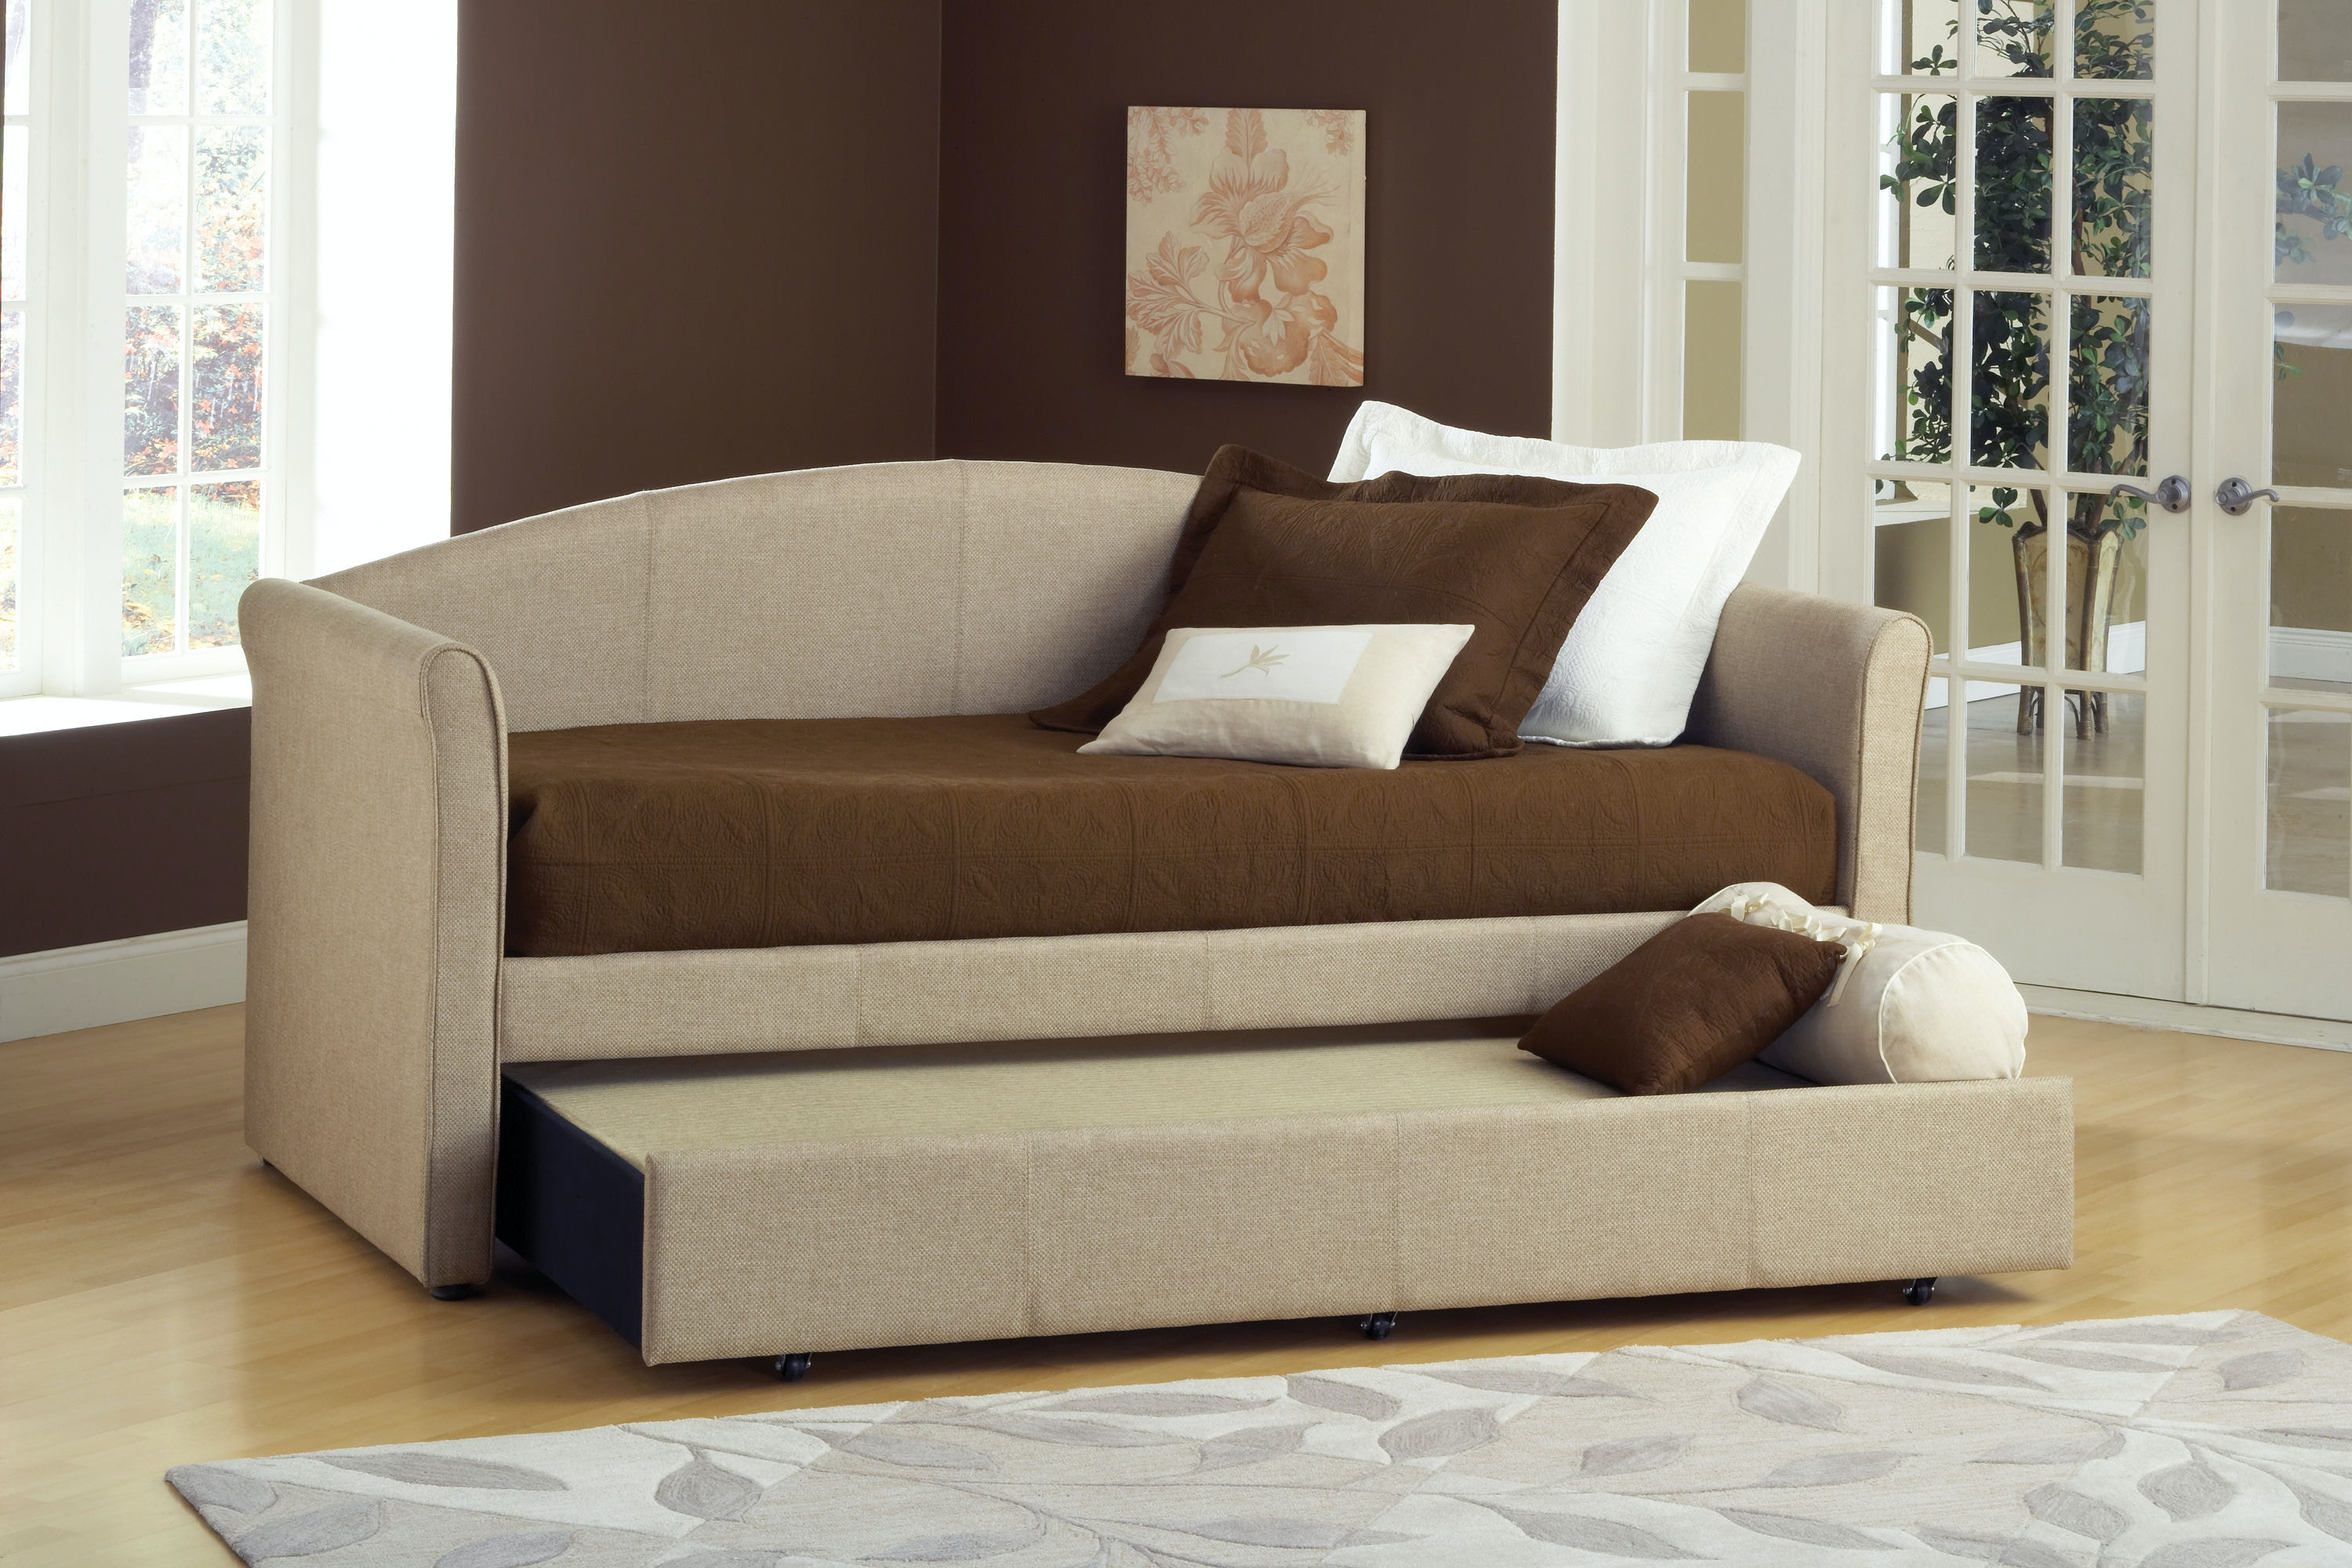 Hillsdale Furniture Bedroom Siesta Daybed   Trundle 1017 030 At Indian  River Furniture